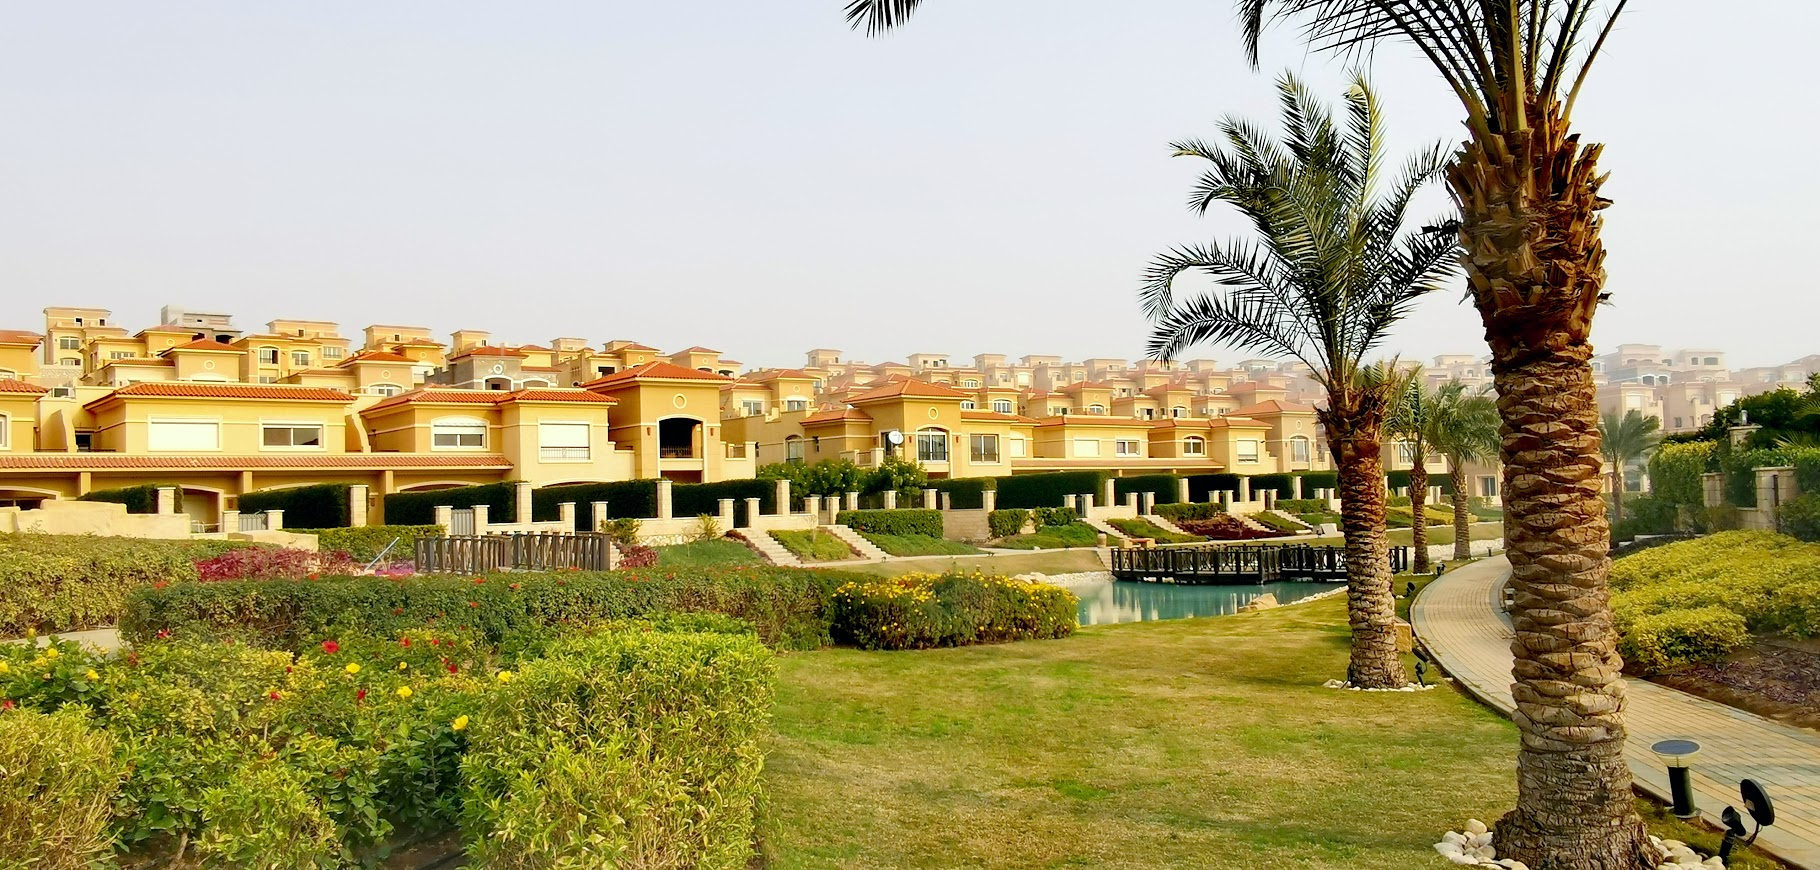 Villas in stone park new cairo